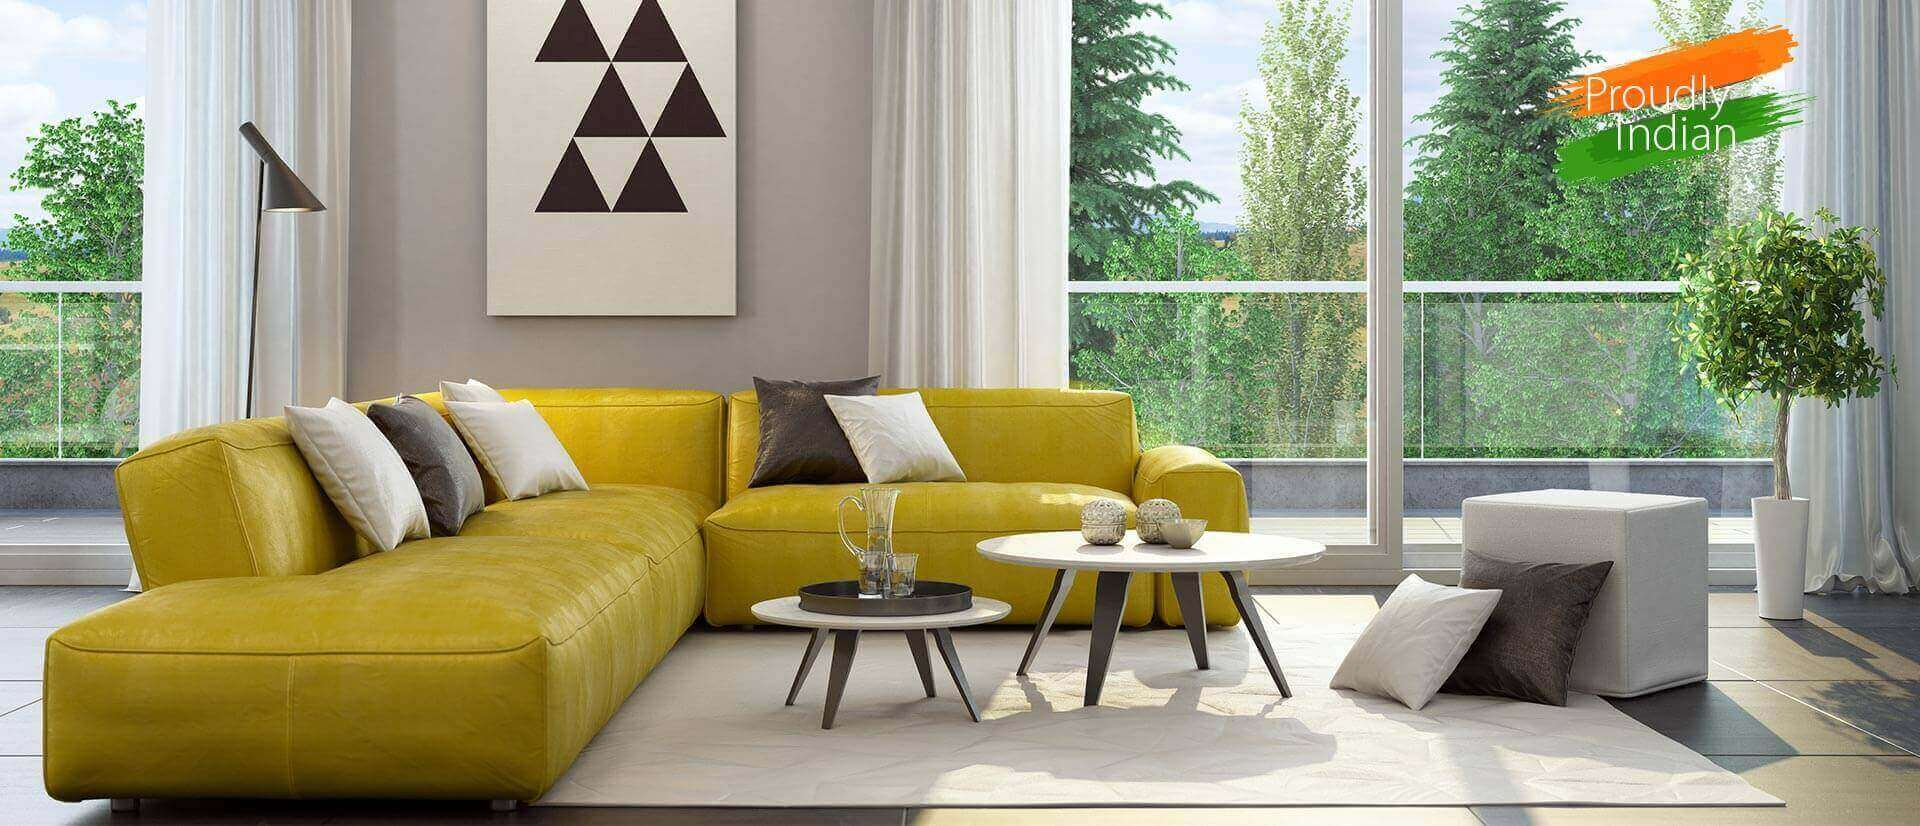 Sofa Manufacturers in Bangalore